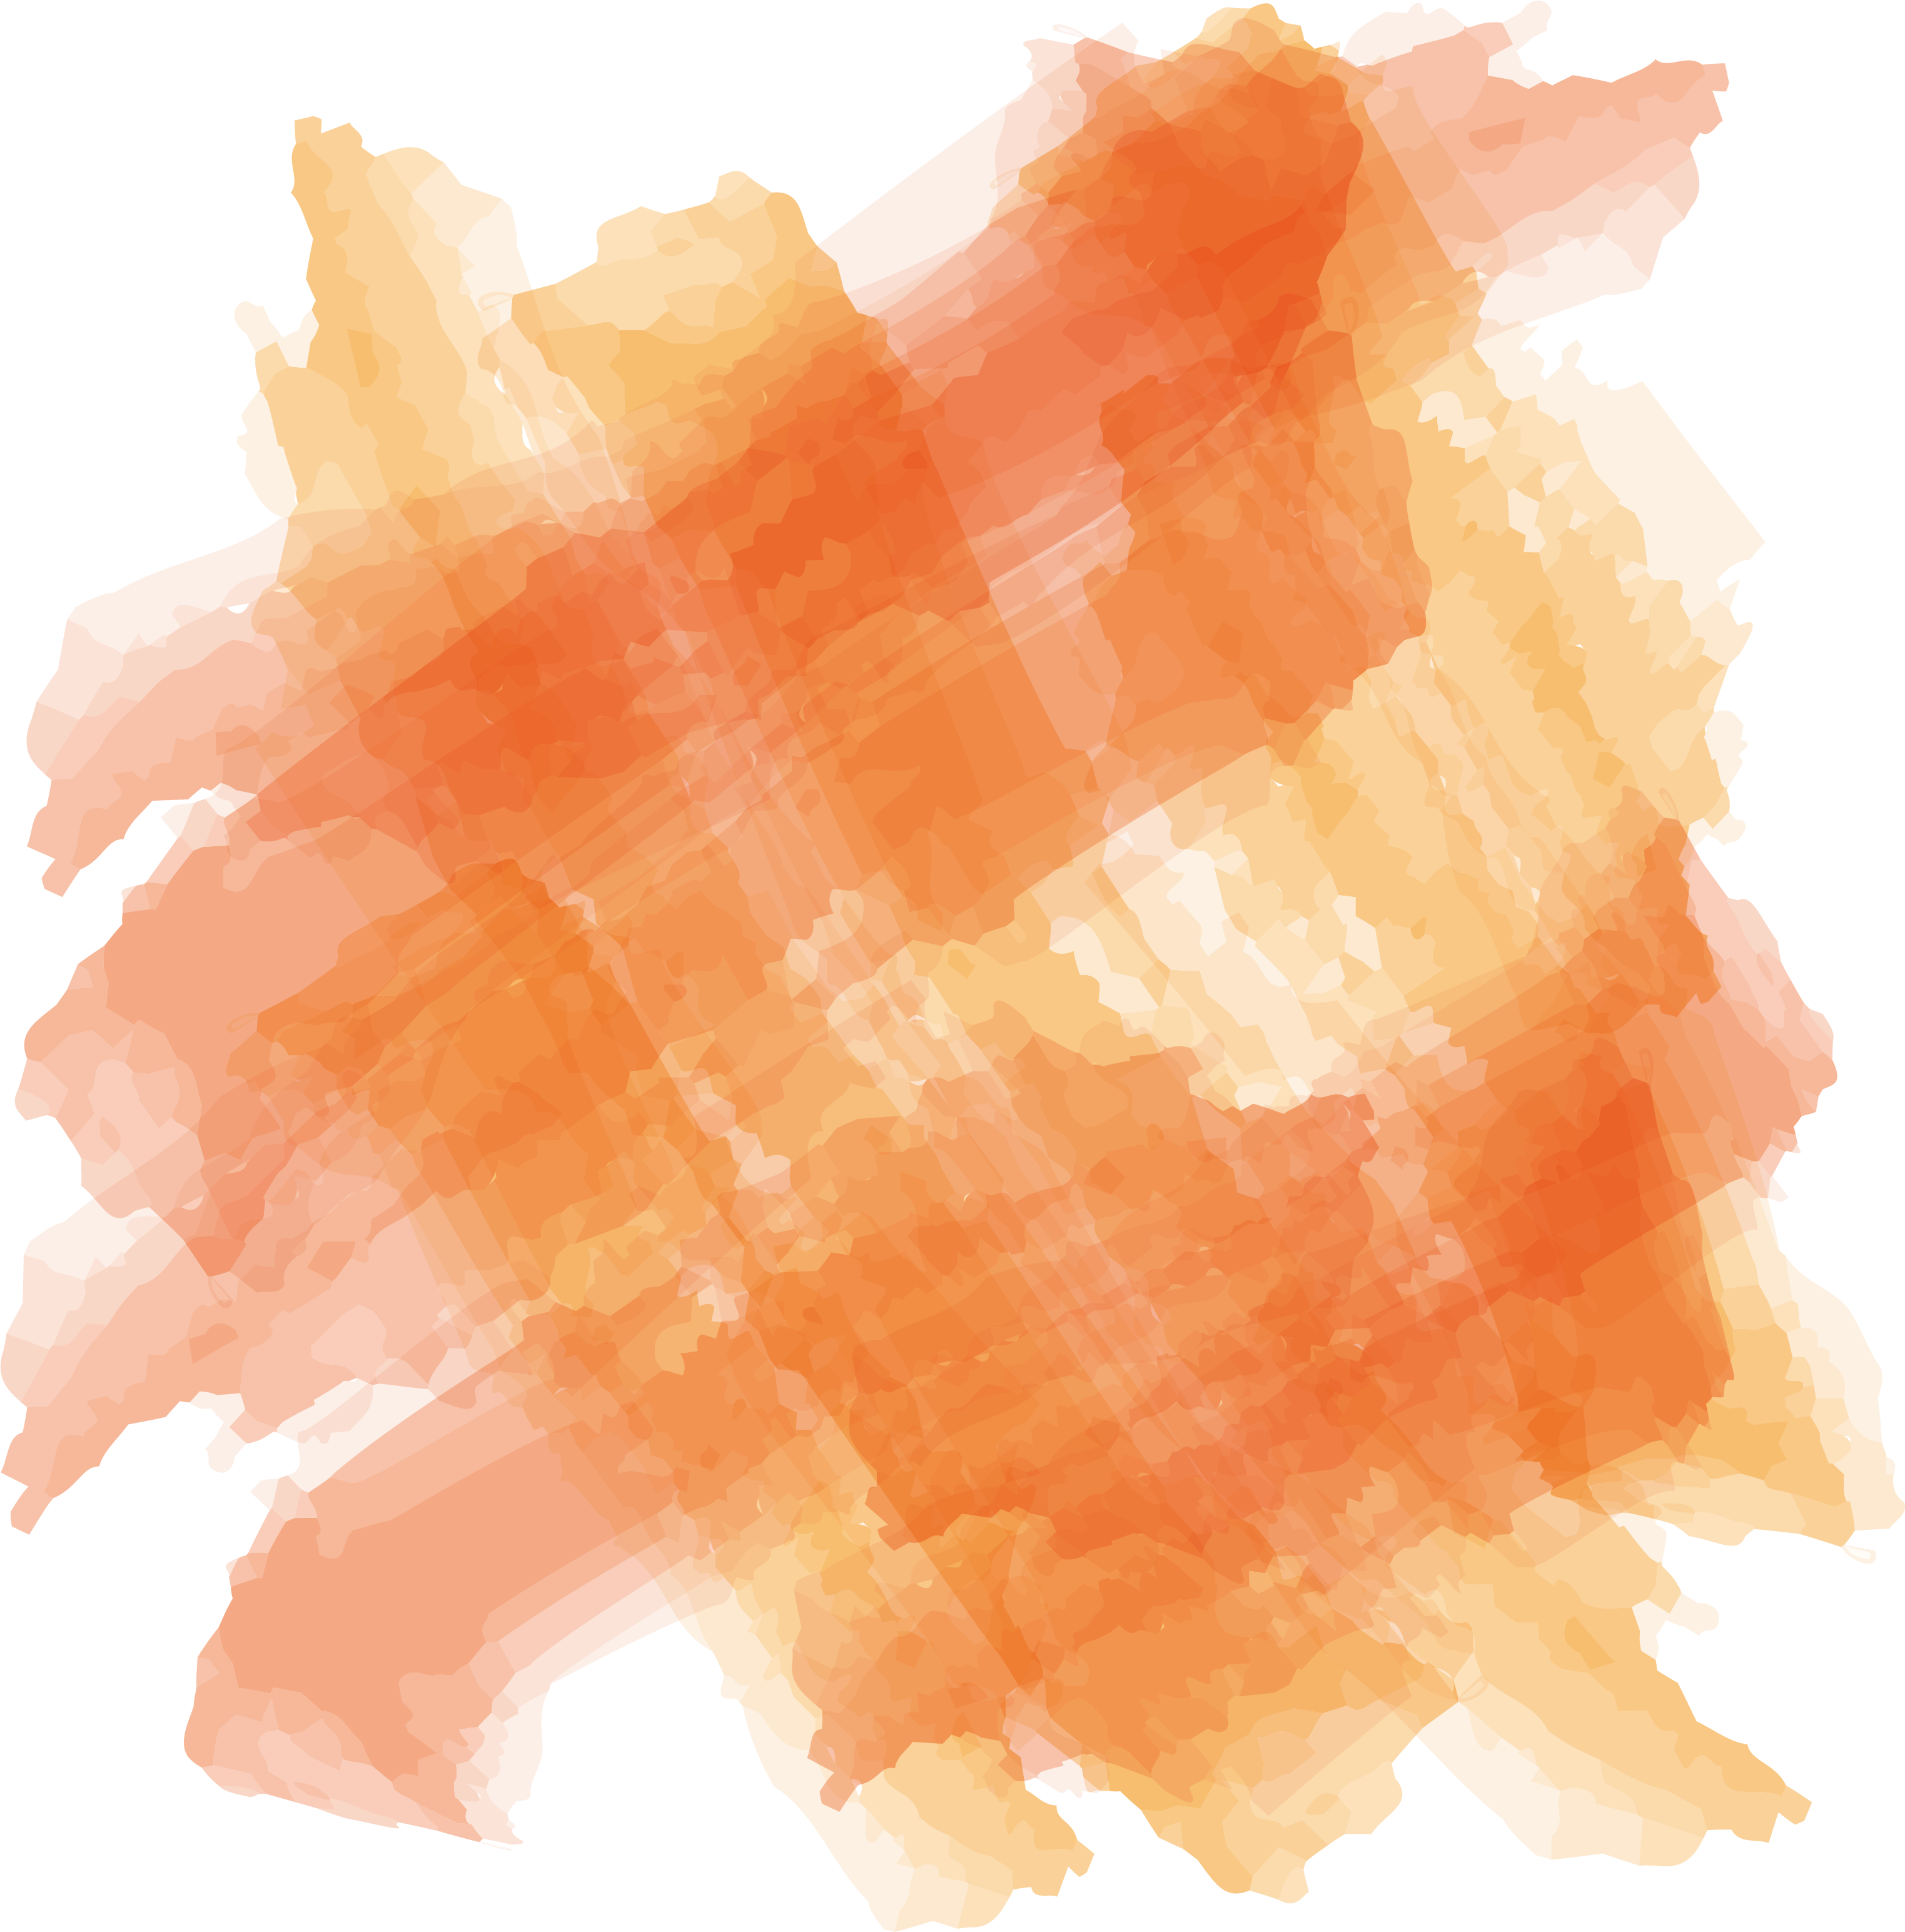 Cheese watercolor png. Orange painting paintbrush cross